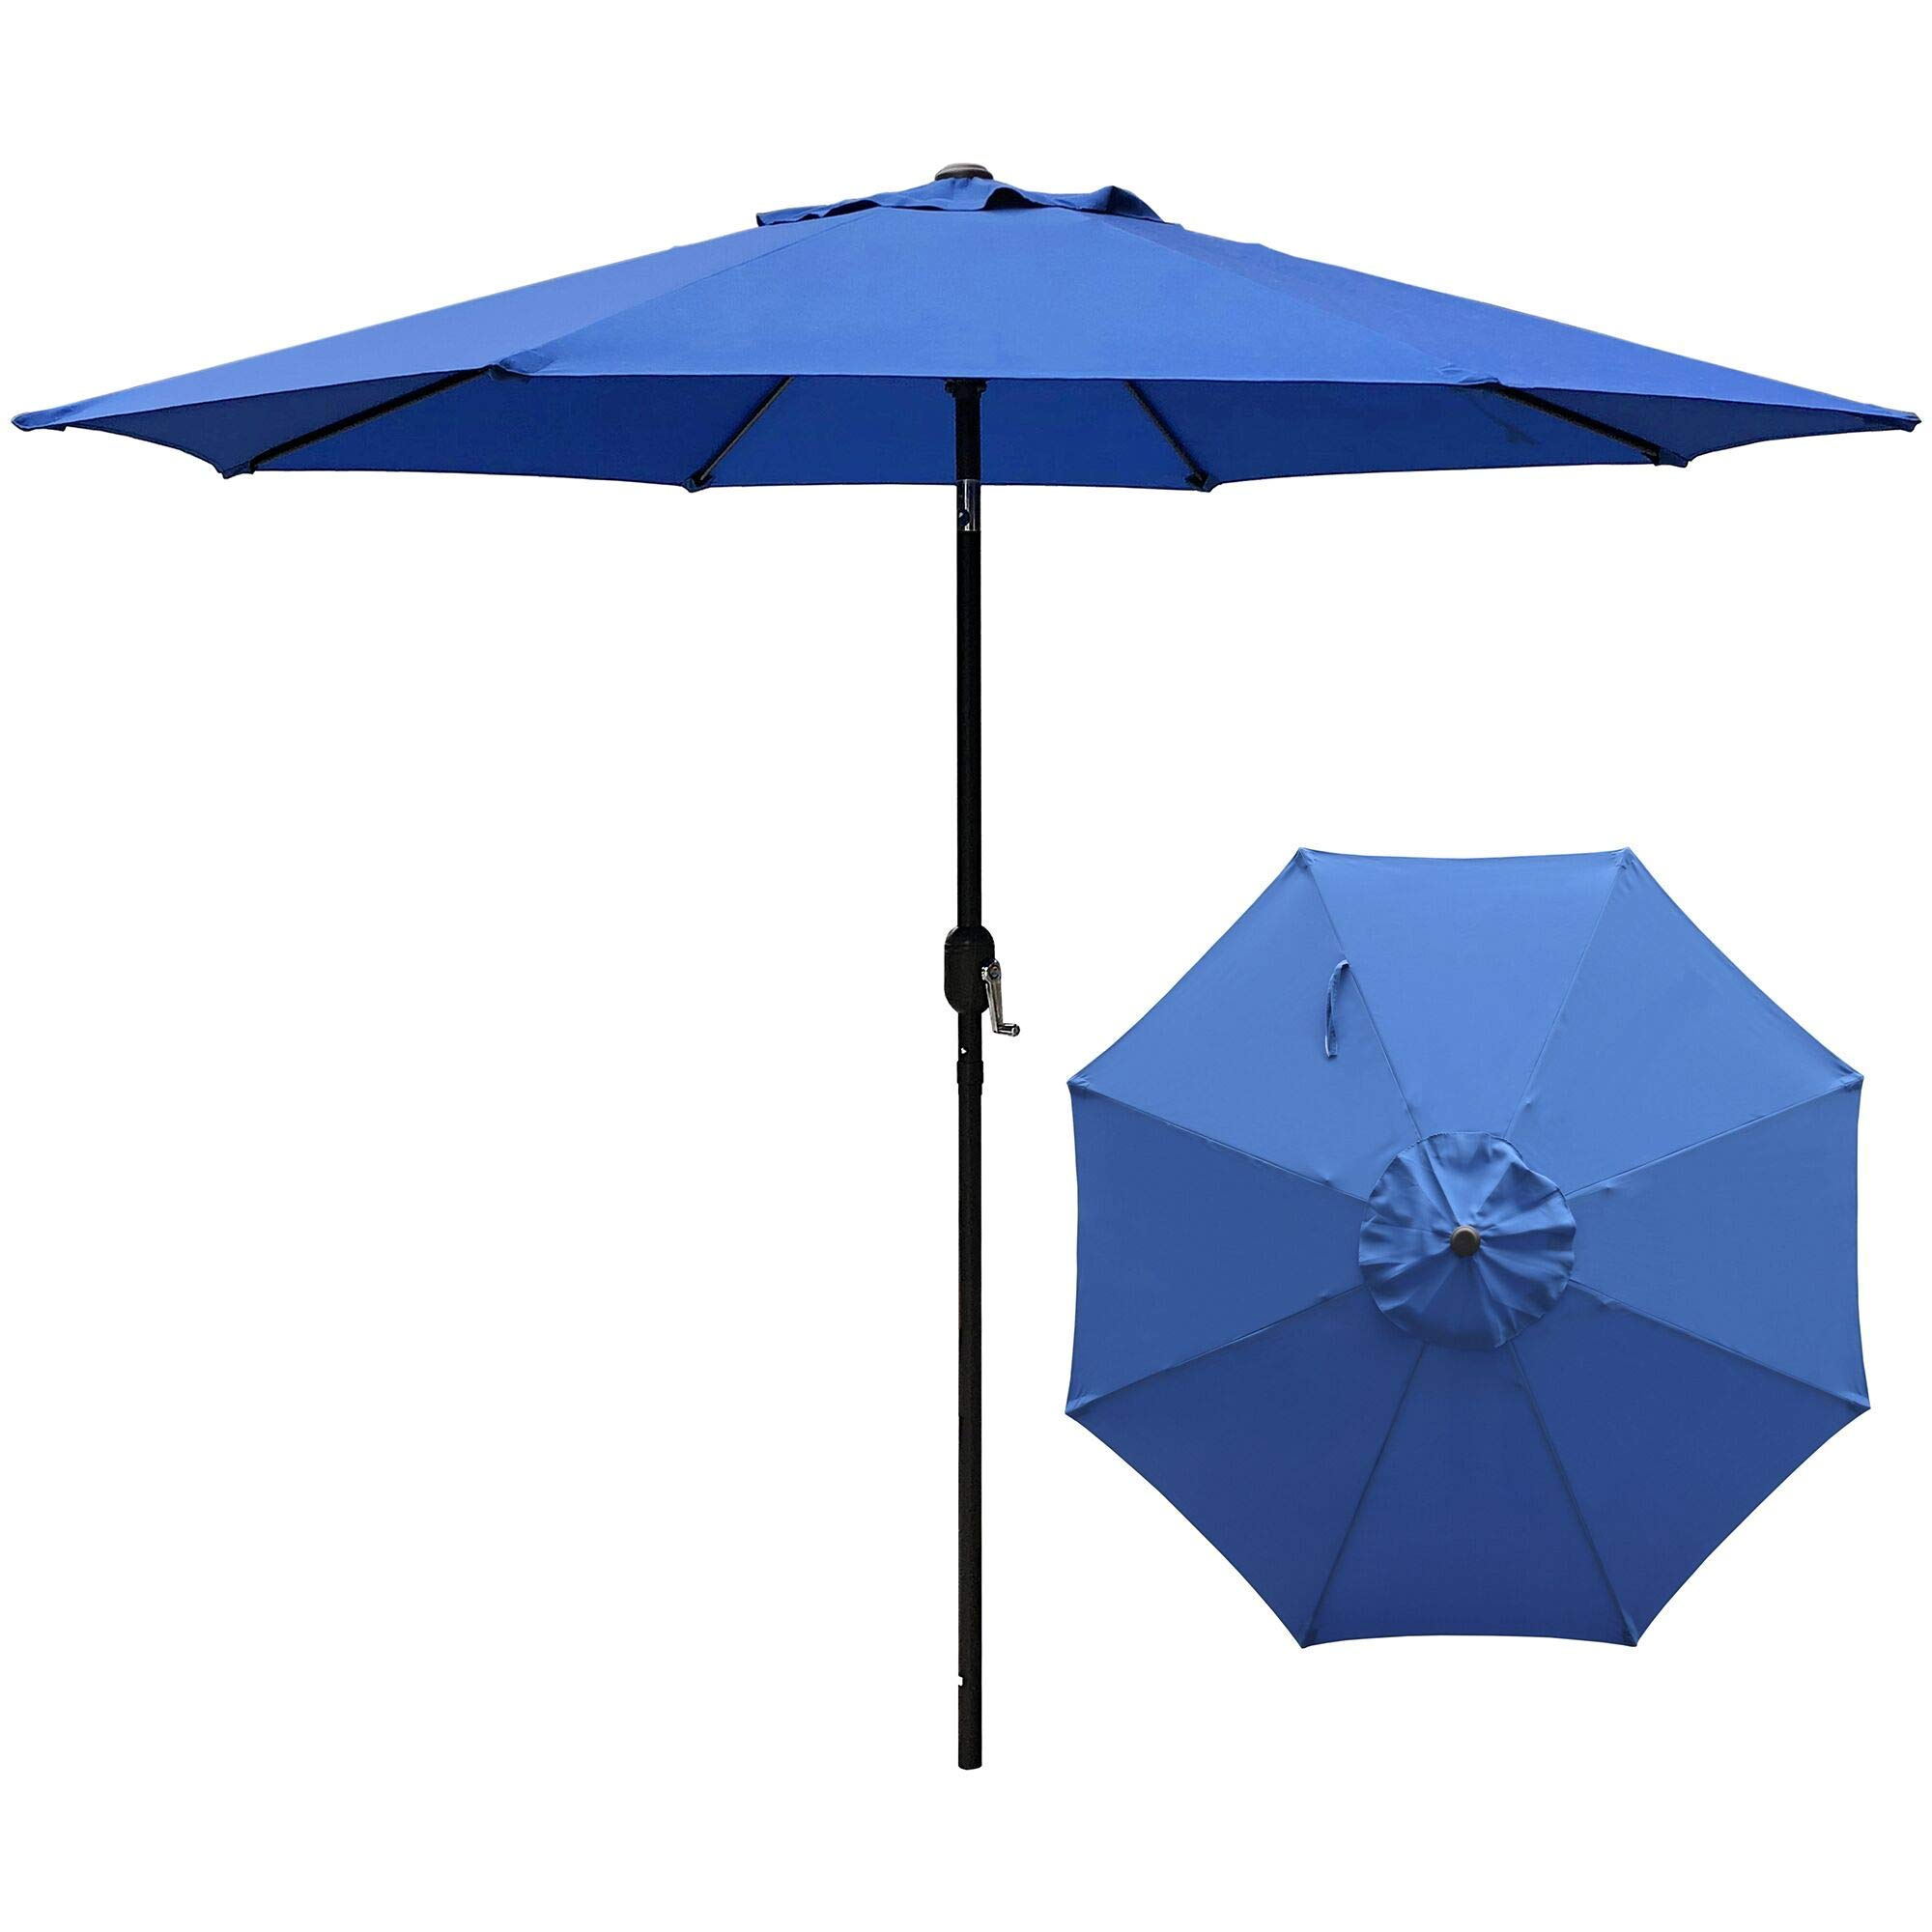 ABBLE Outdoor Patio Umbrella 9 Ft with Tilt and Crank, Weather Resistant, UV Protective Umbrella, Durable, 8 Sturdy Steel Ribs, Market Outdoor Table Umbrella, Royal Blue by ABBLE